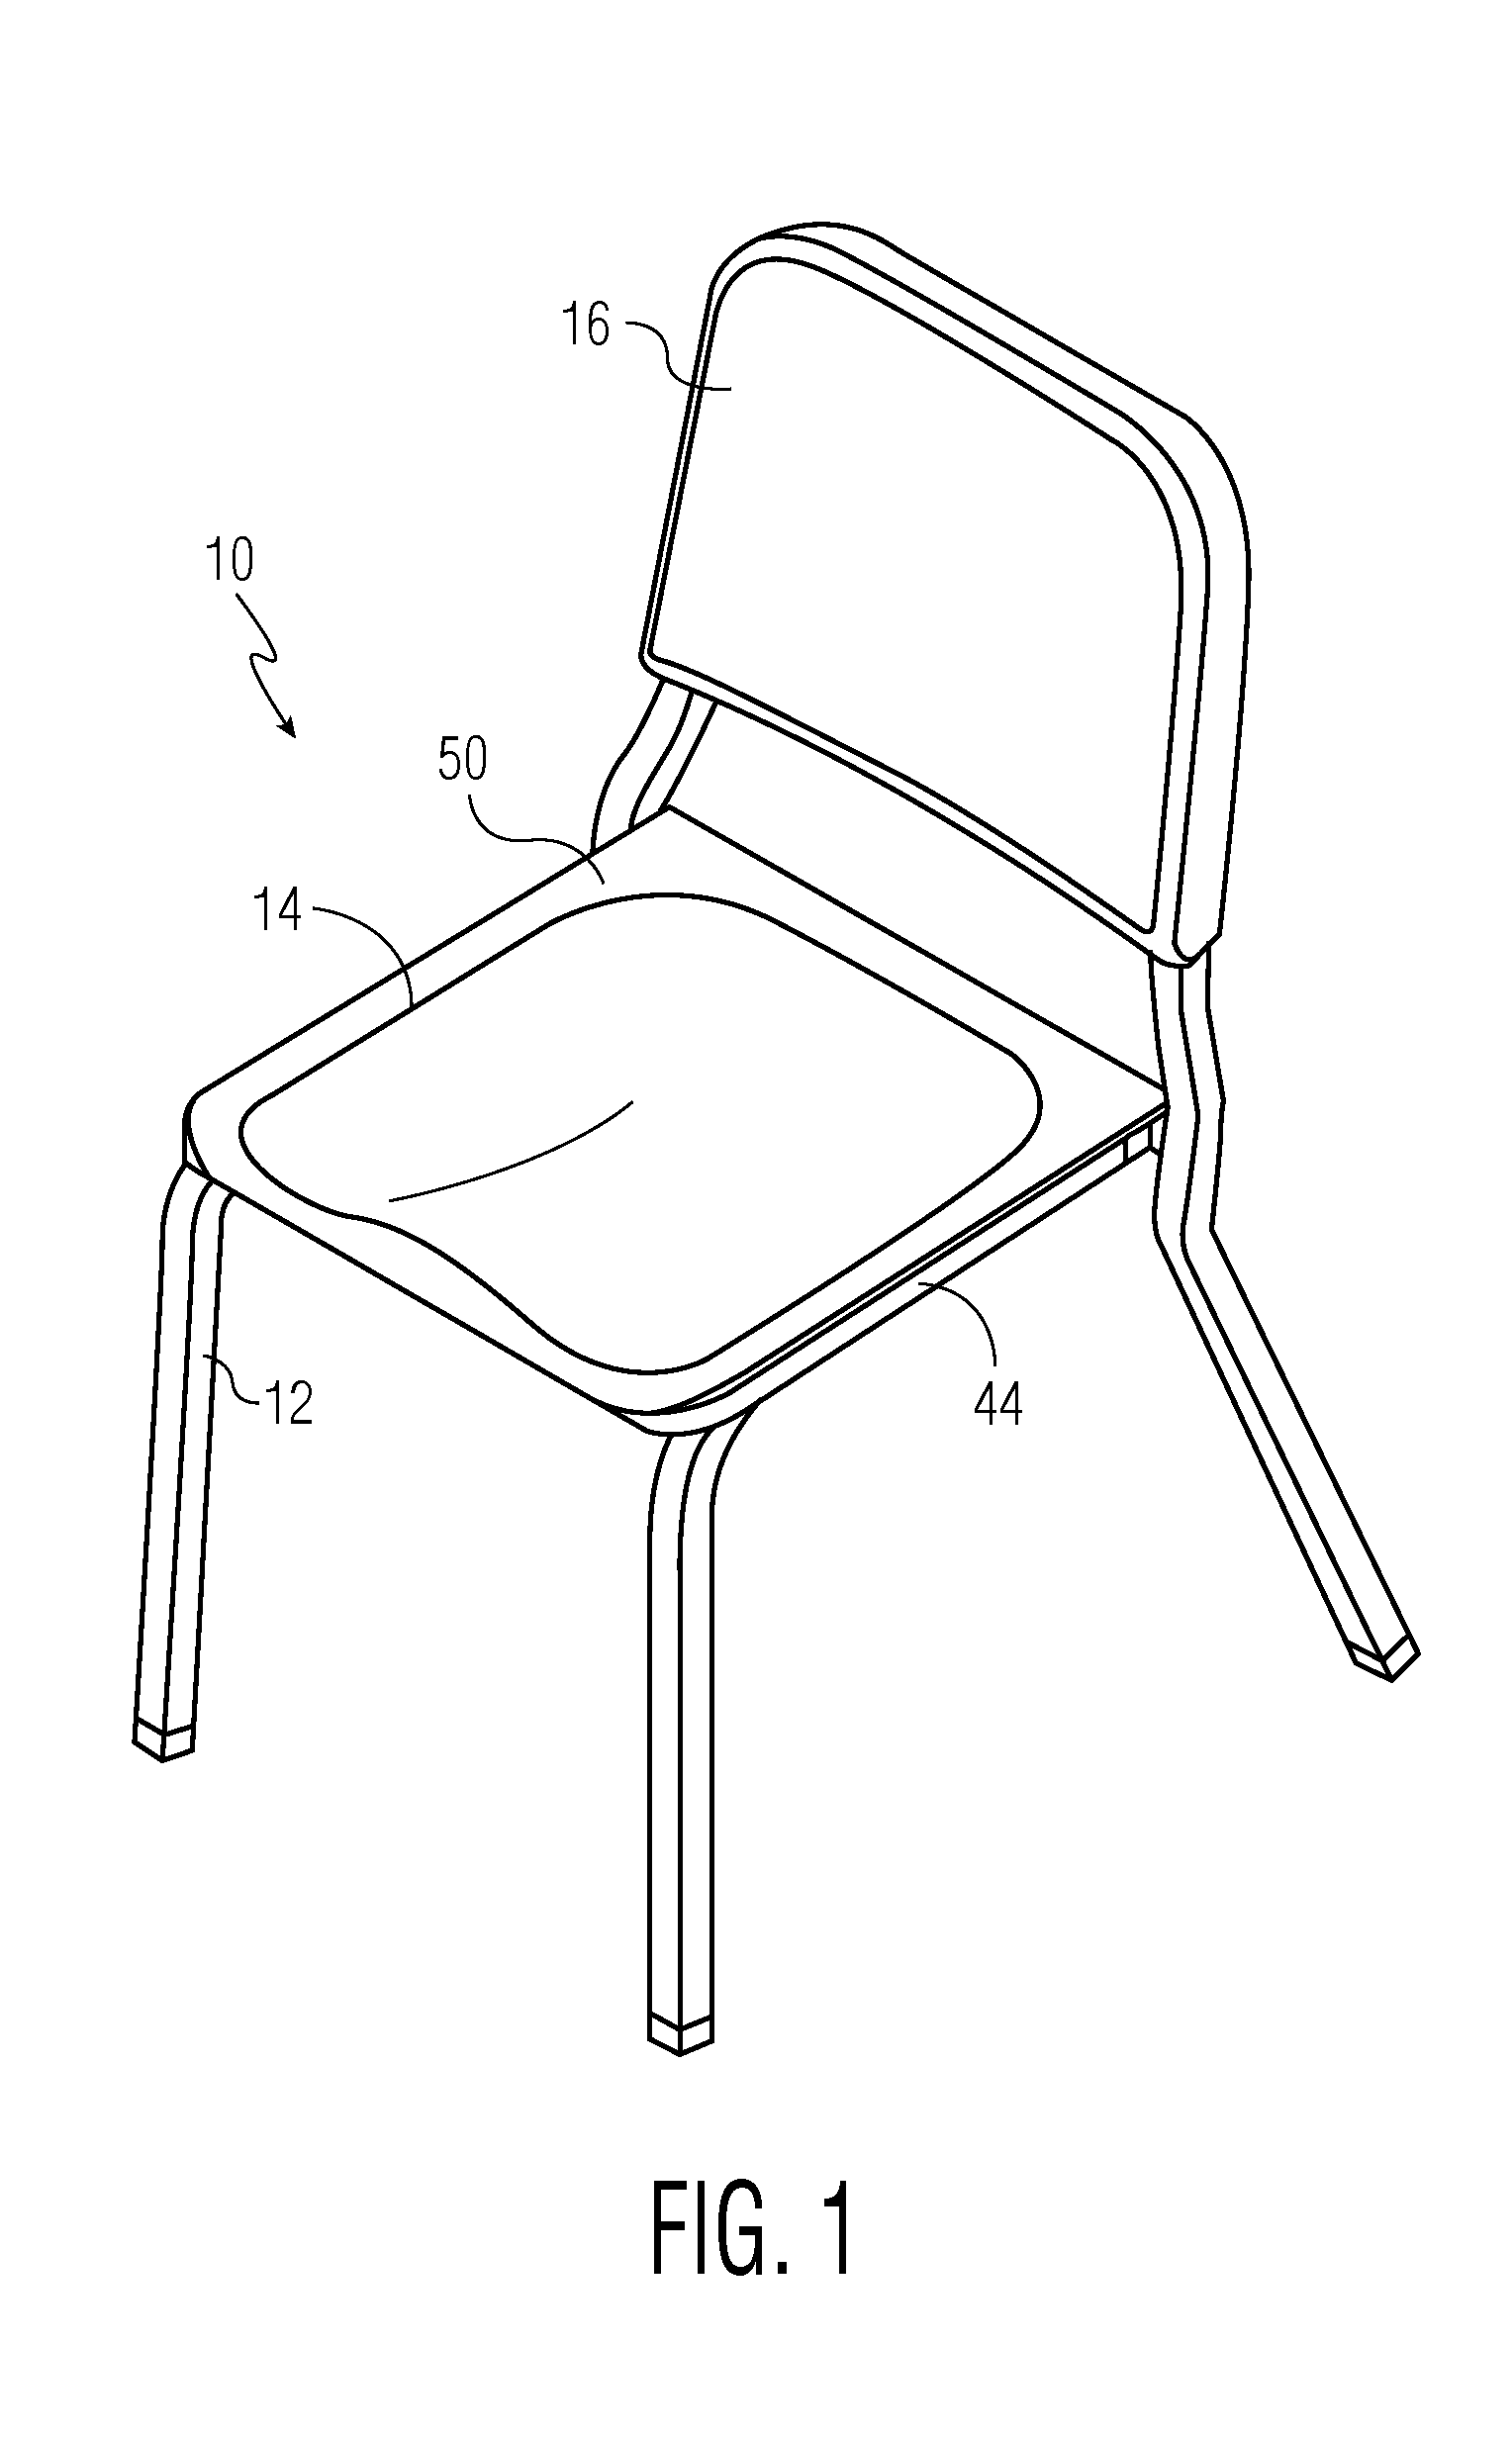 wenger posture chair dining table 4 chairs and bench patent us7396078 music google patents